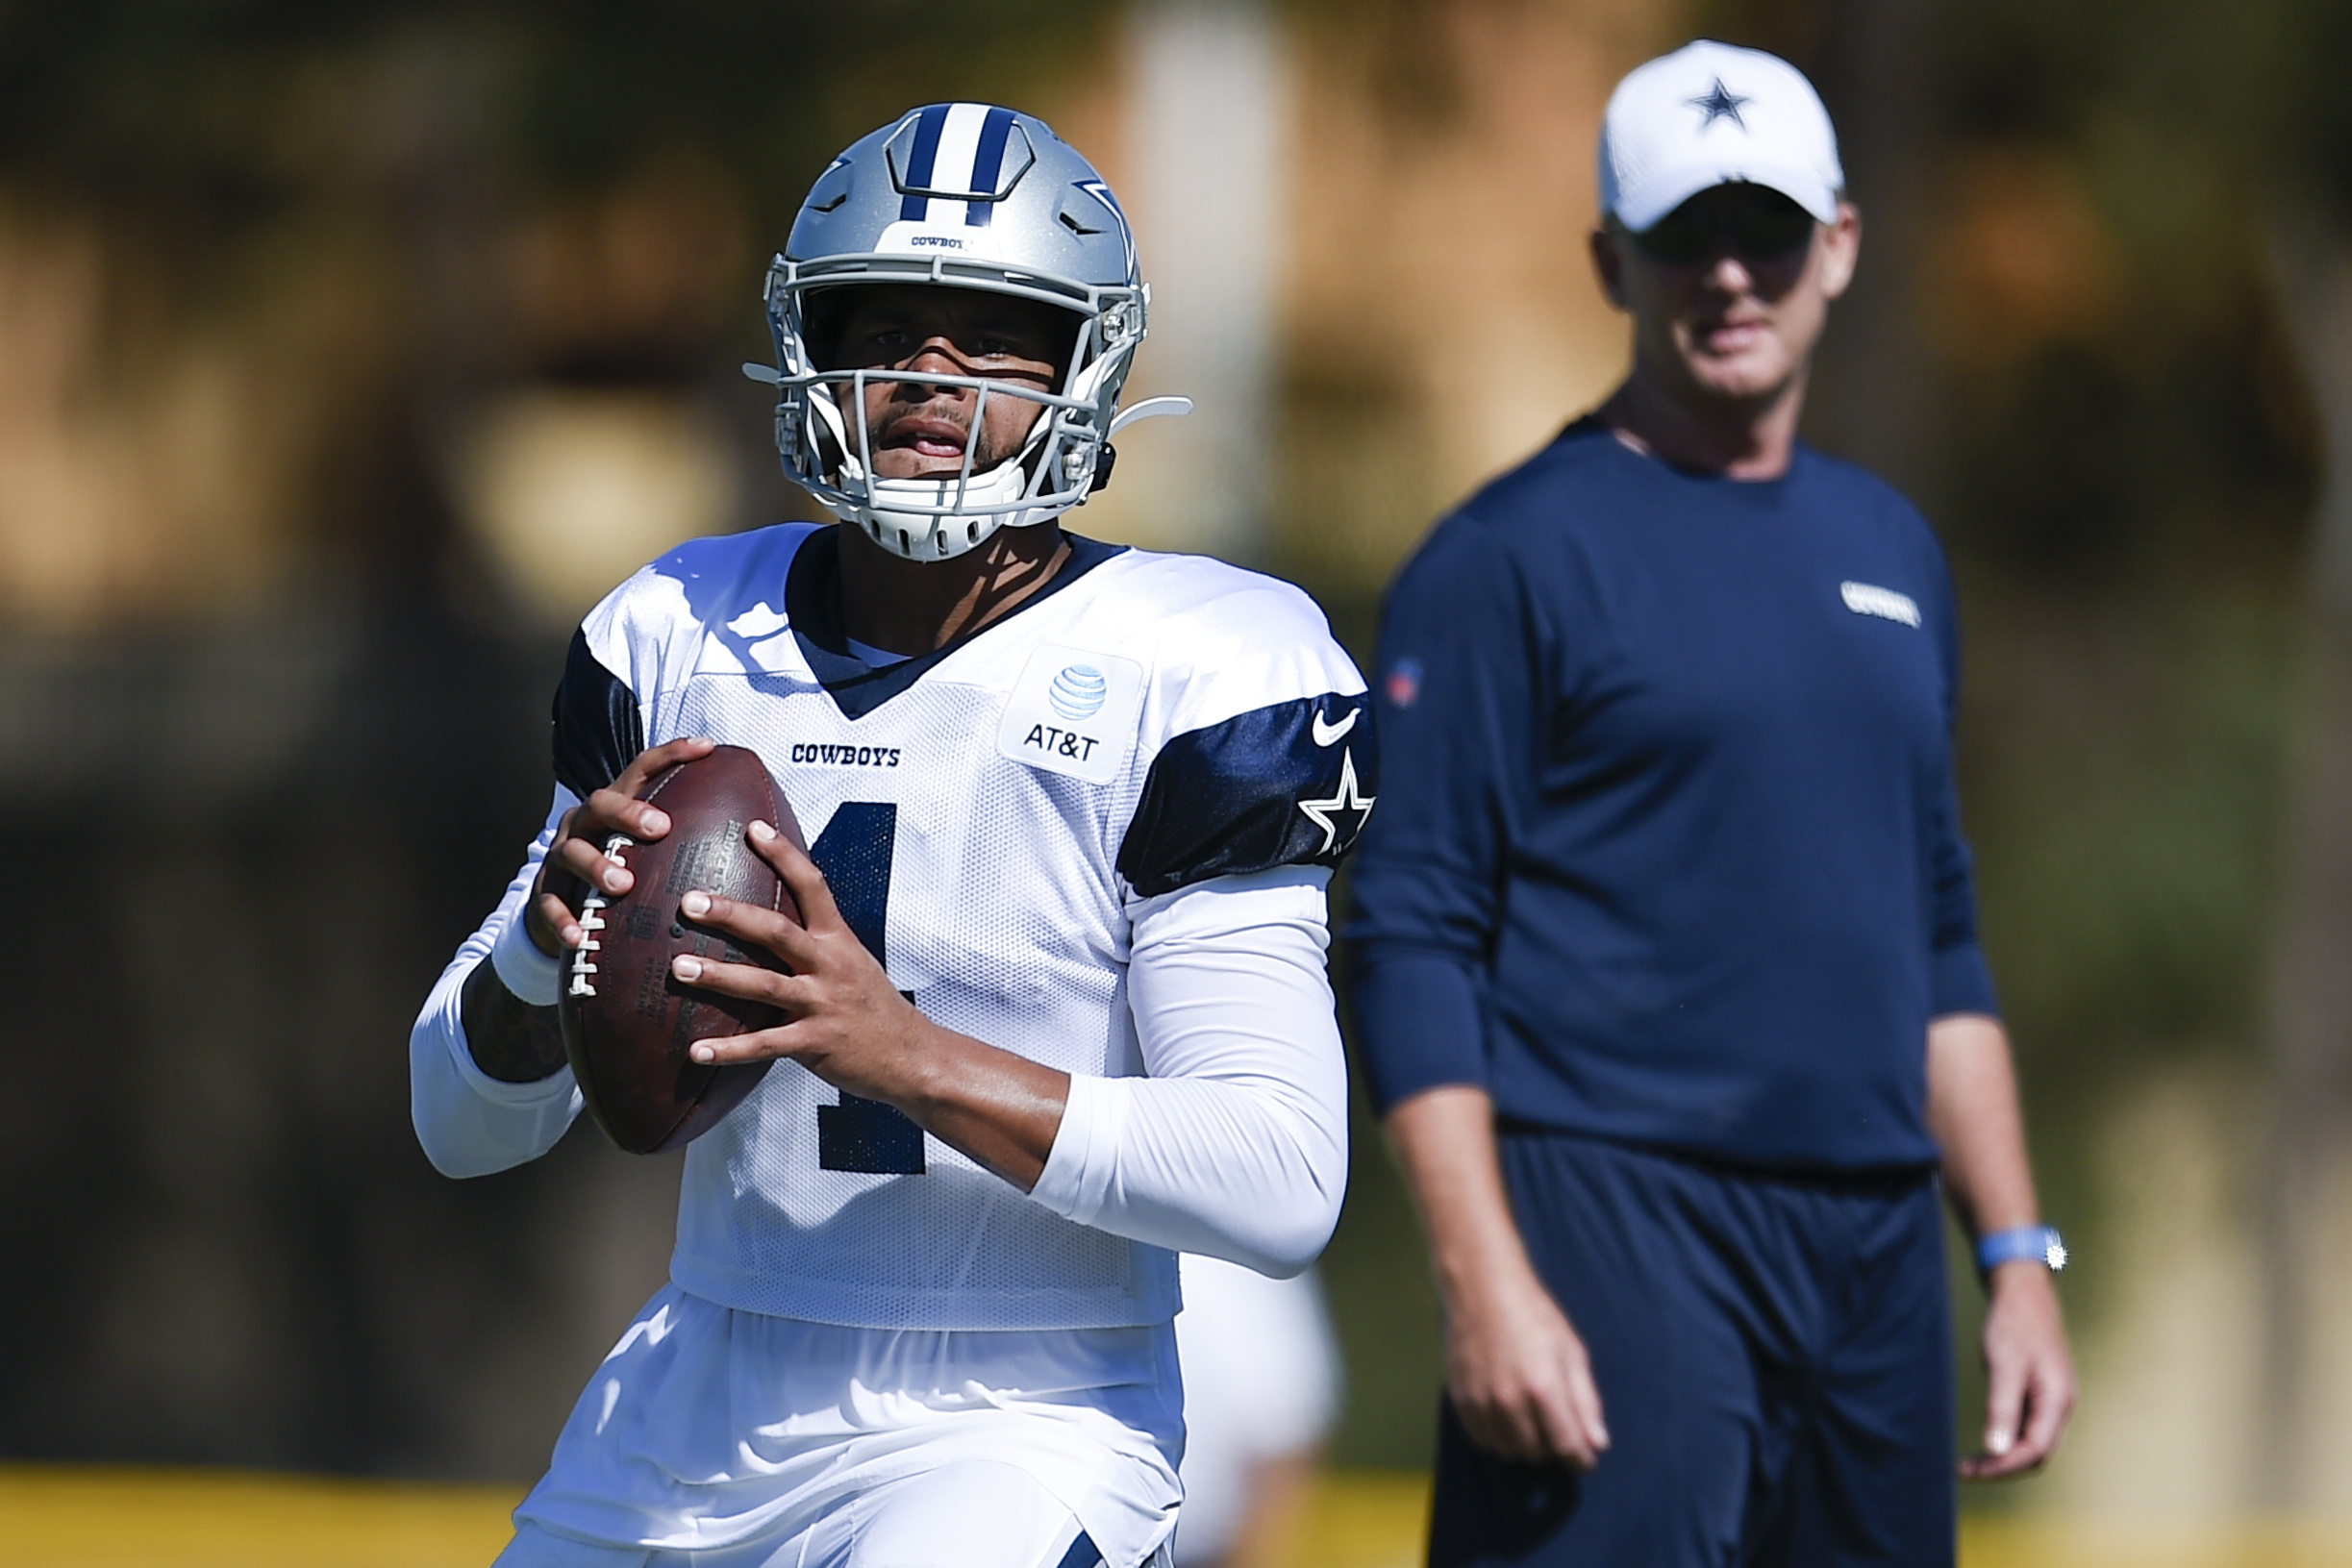 Aug 1, 2019; Oxnard, CA, USA; Dallas Cowboys quarterback Dak Prescott (4) looks to pass as head coach Jason Garrett watches during training camp at Marriott Residence Inn at River Ridge. Mandatory Credit: Kelvin Kuo-USA TODAY Sports